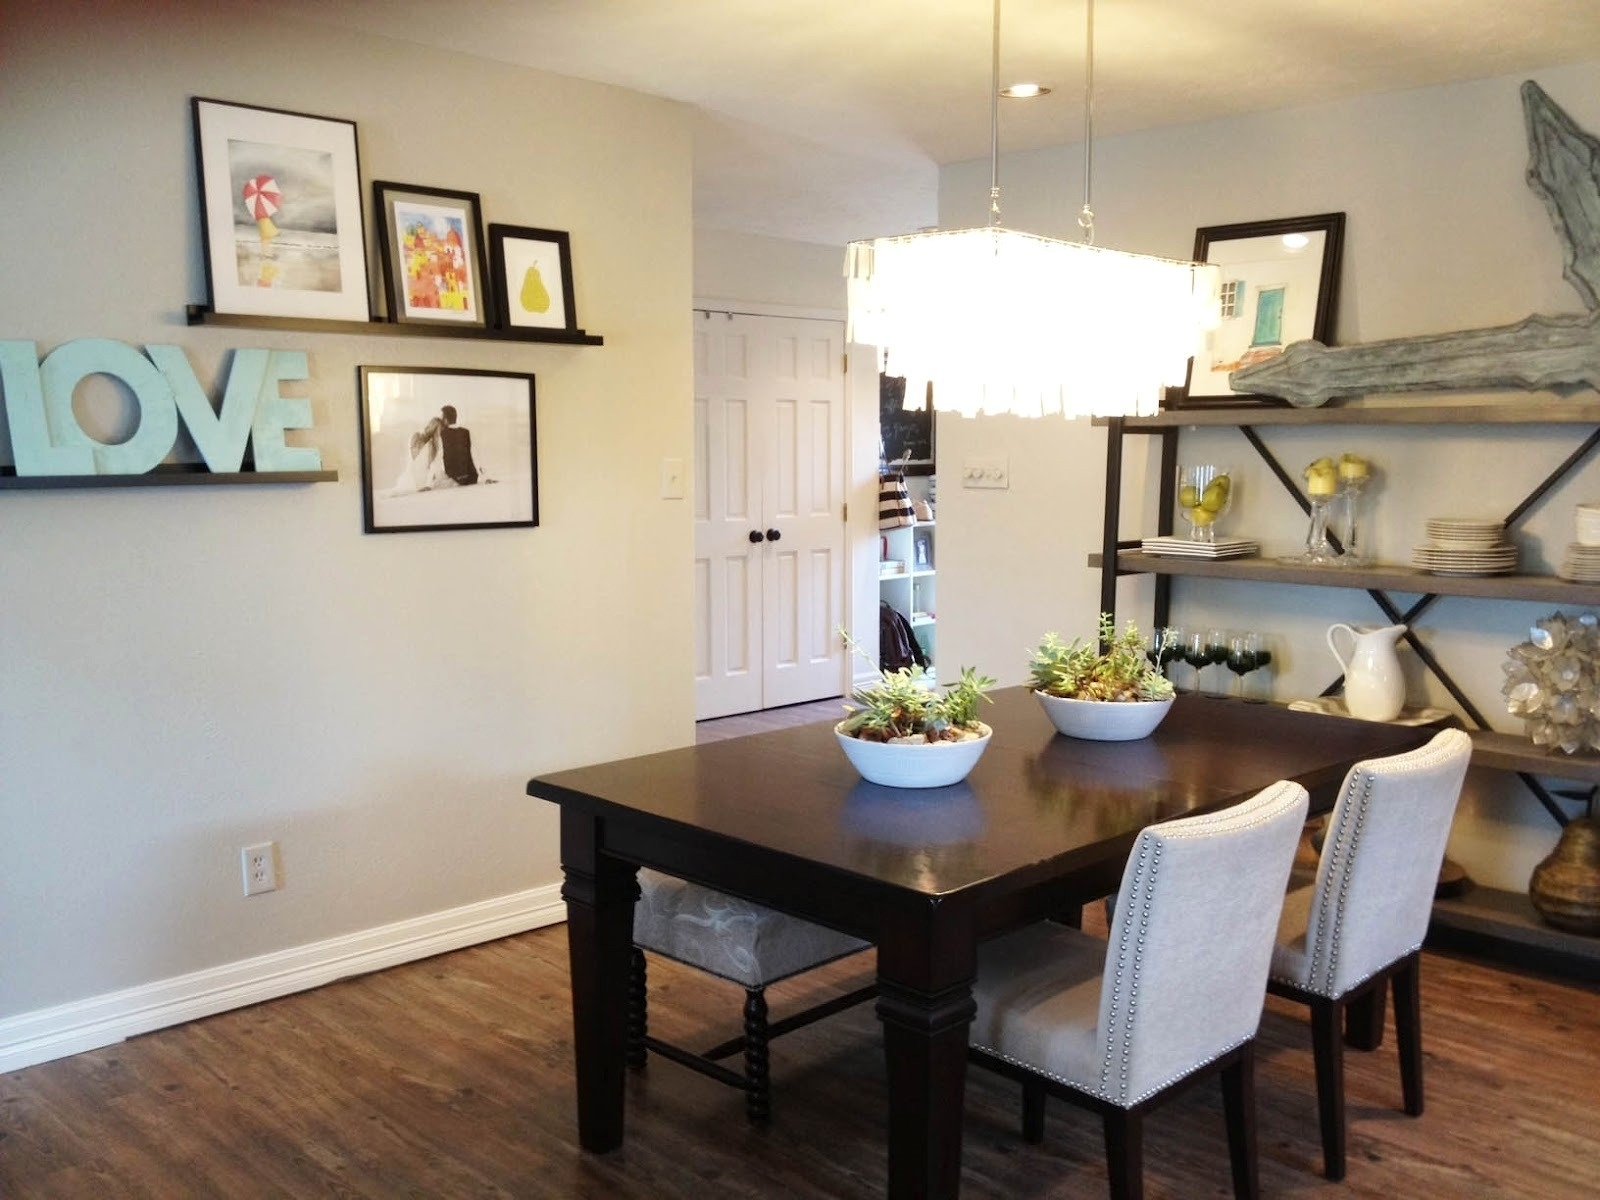 Houzz Floor Lamps Best Of Lighting Dining Room Table Ideas Regarding Current Houzz Living Room Table Lamps (Gallery 14 of 20)